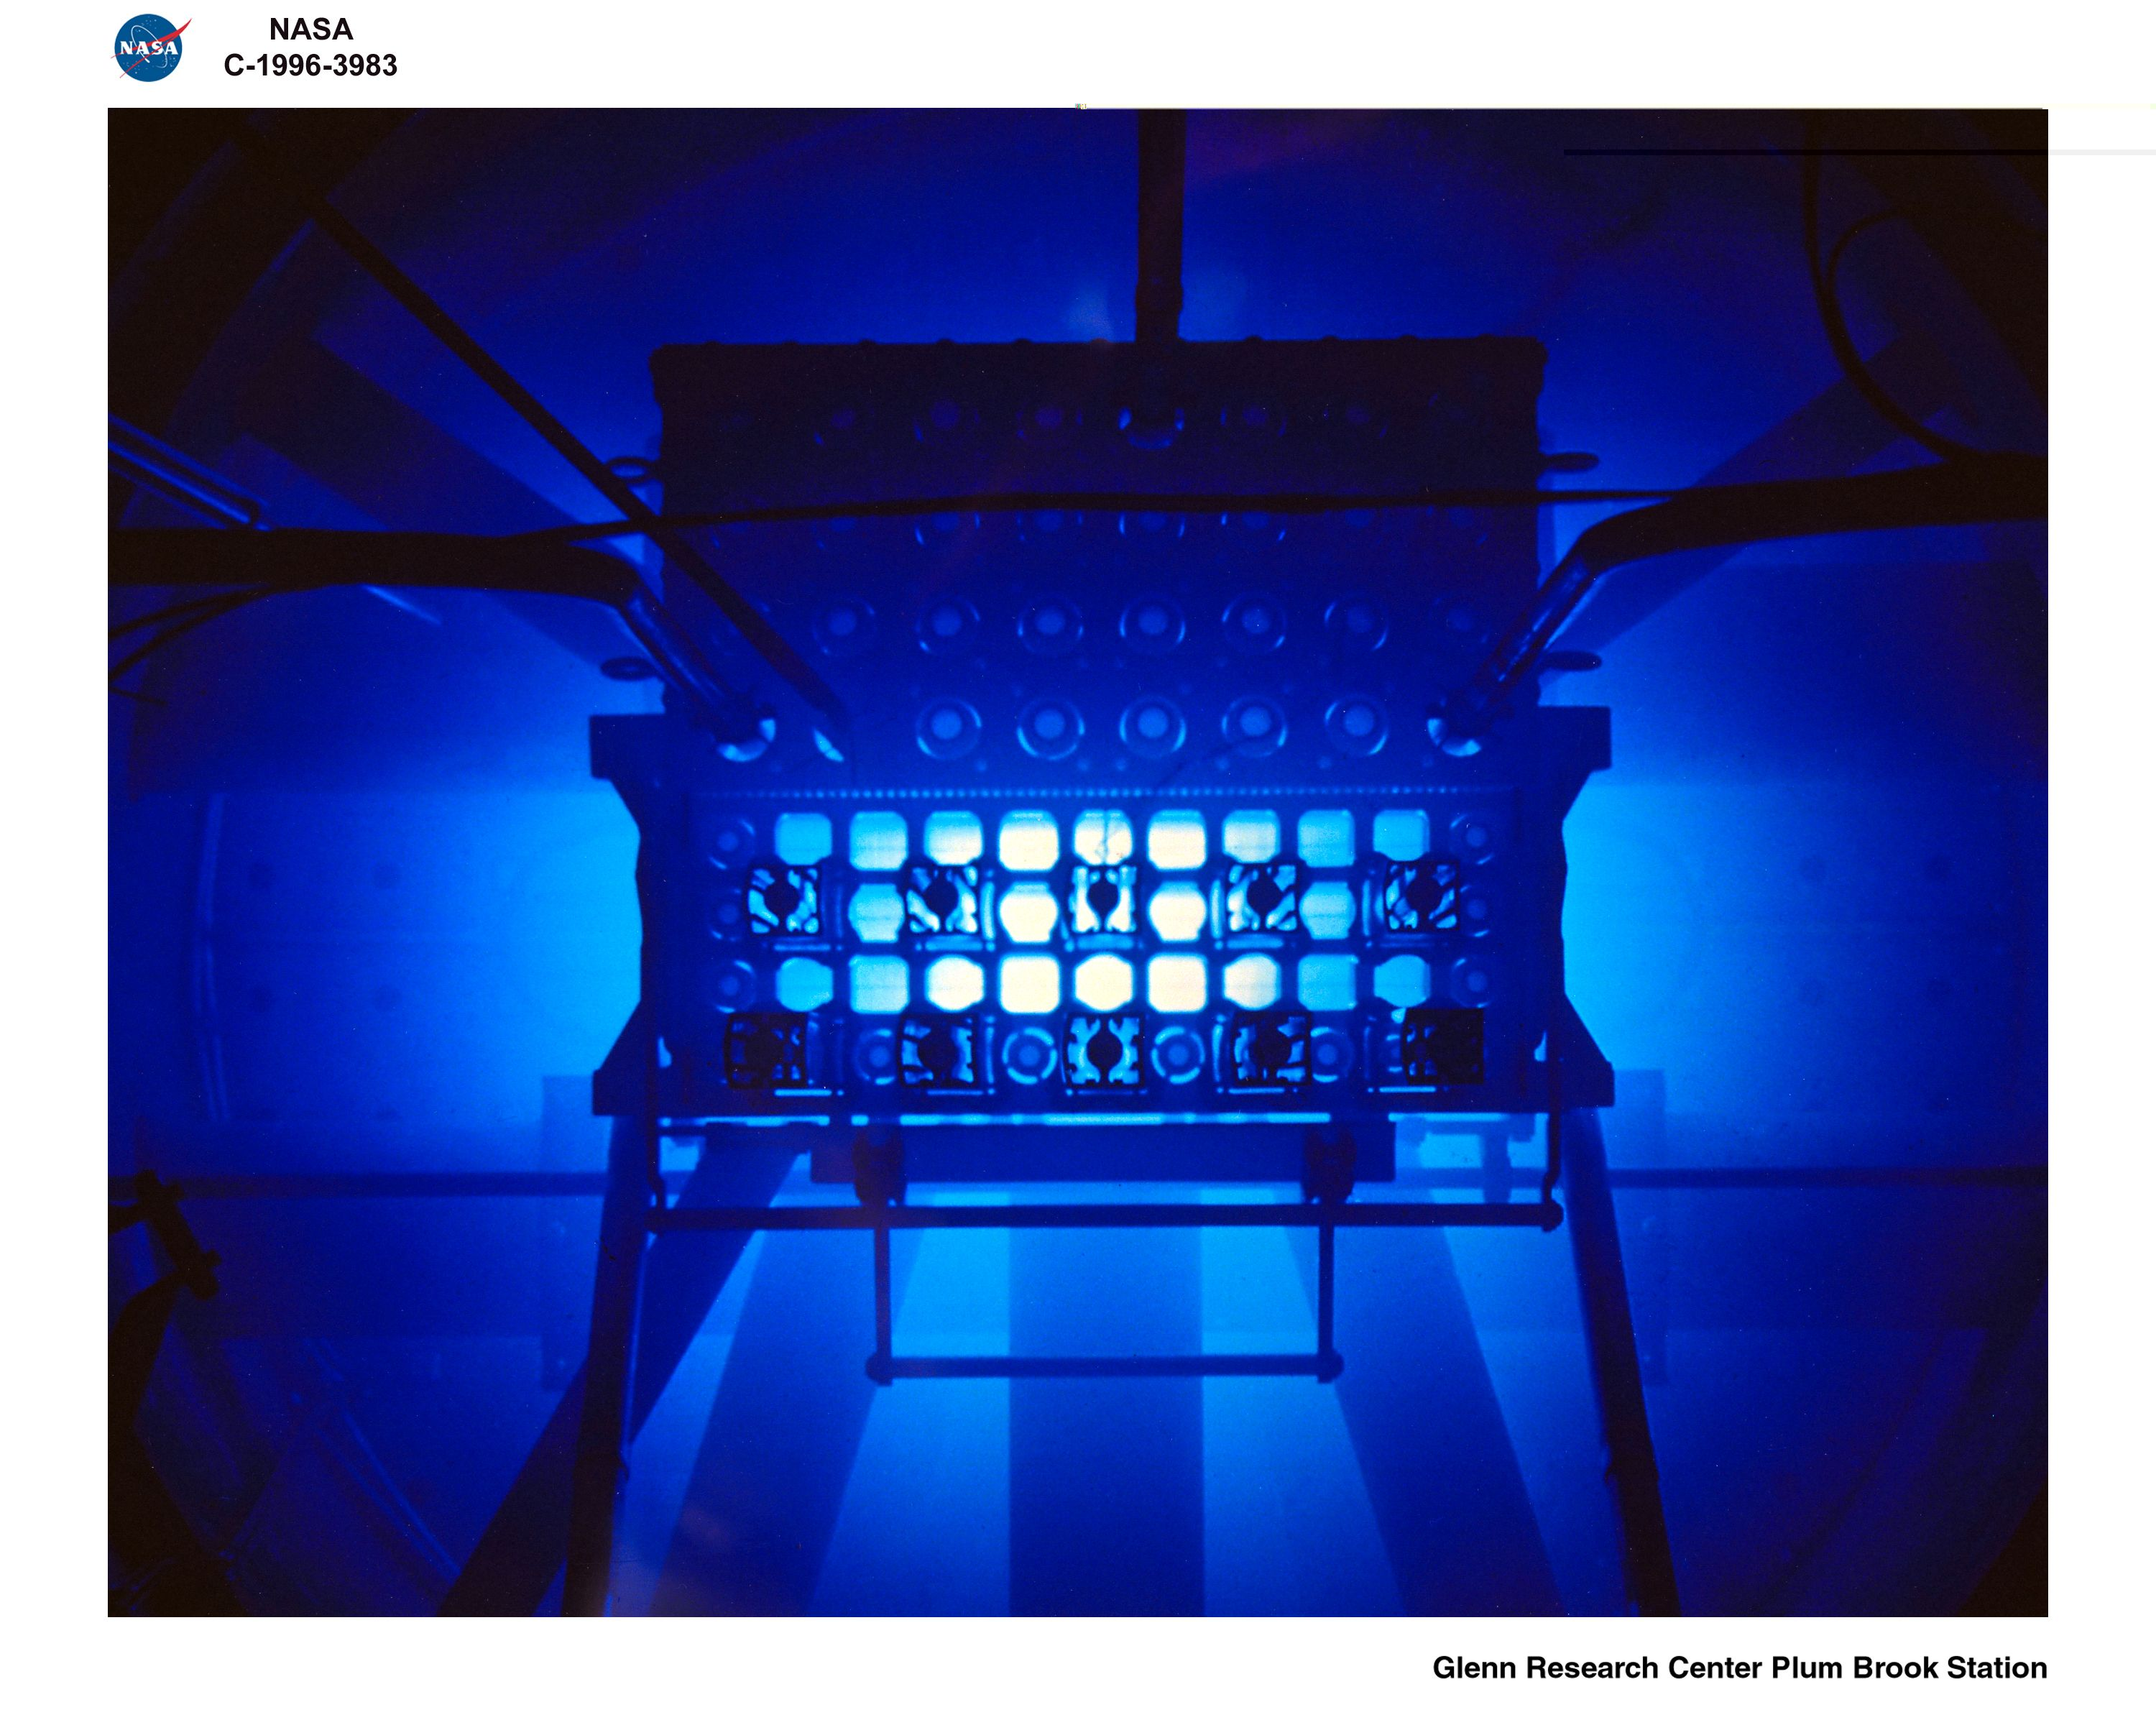 During criticality, the Plum Brook Reactor core emitted an eerie blue glow known as Cherenkov radiation. This is common to all swimming pool reactors. The Cherenkov Effect is caused by high-energy beta particles moving at velocities faster than the speed of light in water. Pavel Alekseyevich Cherenkov first observed the phenomenon in 1934.